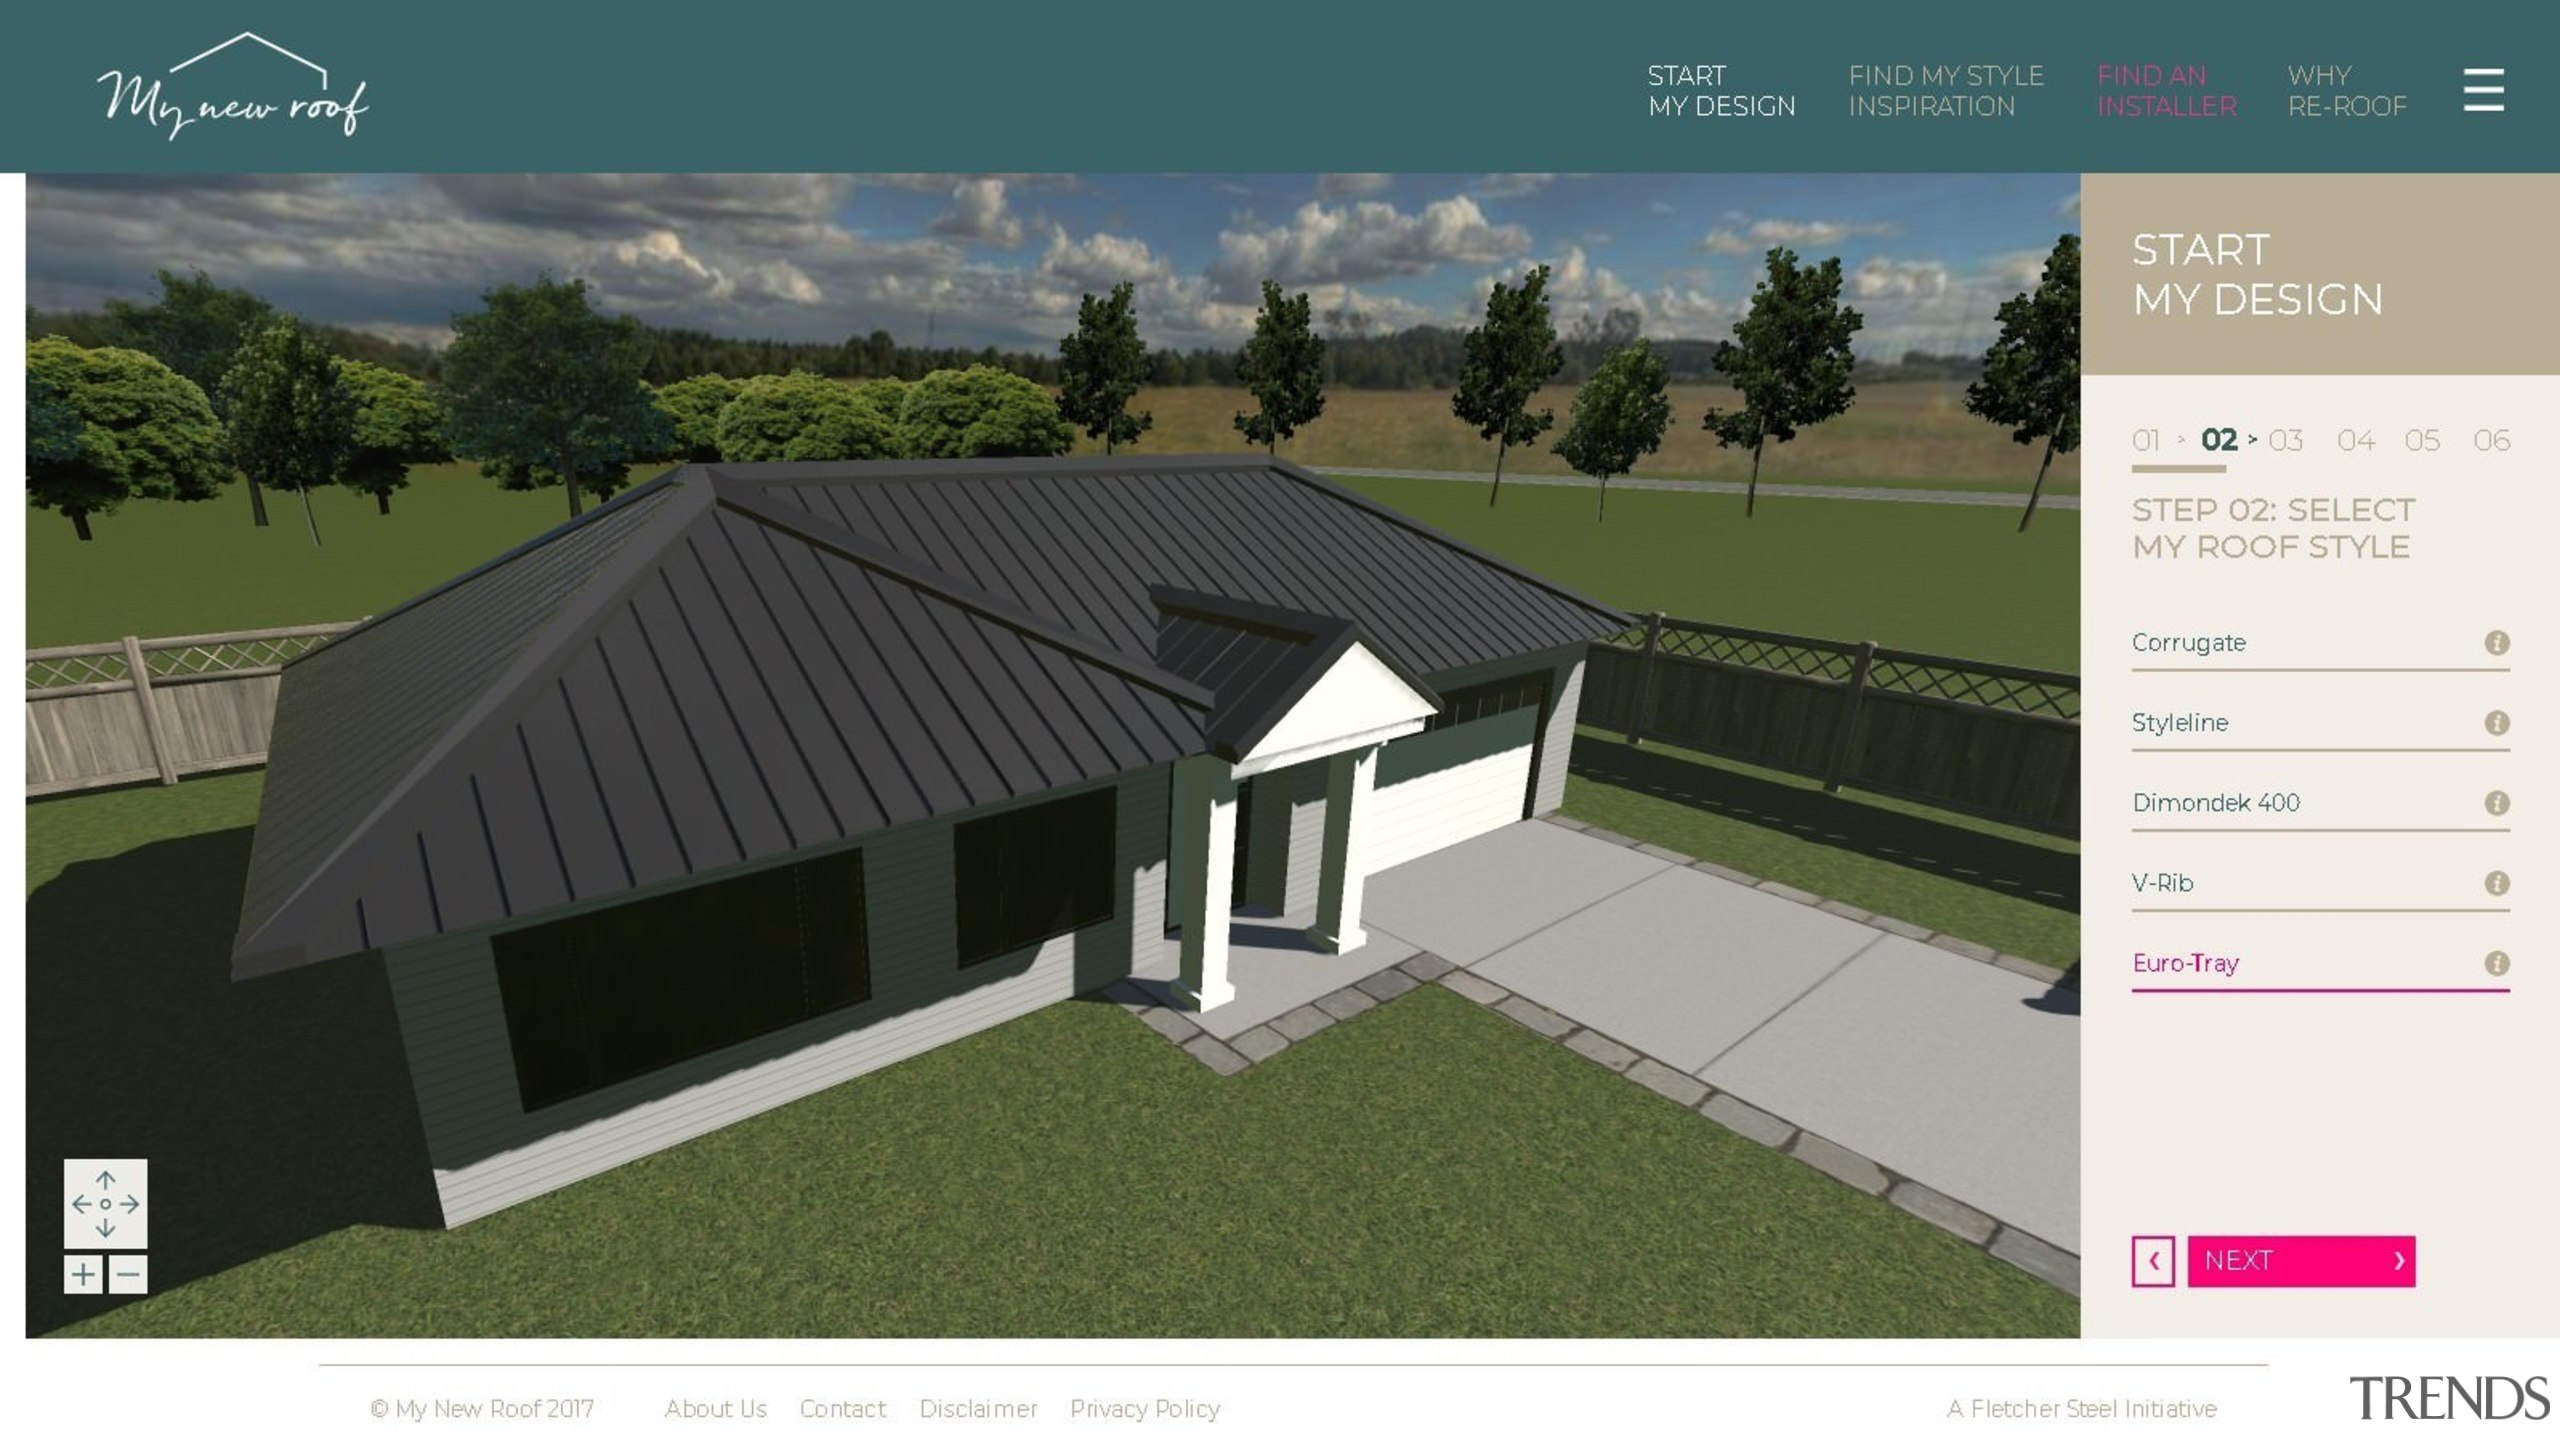 With a fully 3D interface, you can see architecture, design, elevation, facade, home, house, property, real estate, residential area, roof, shed, siding, suburb, white, brown